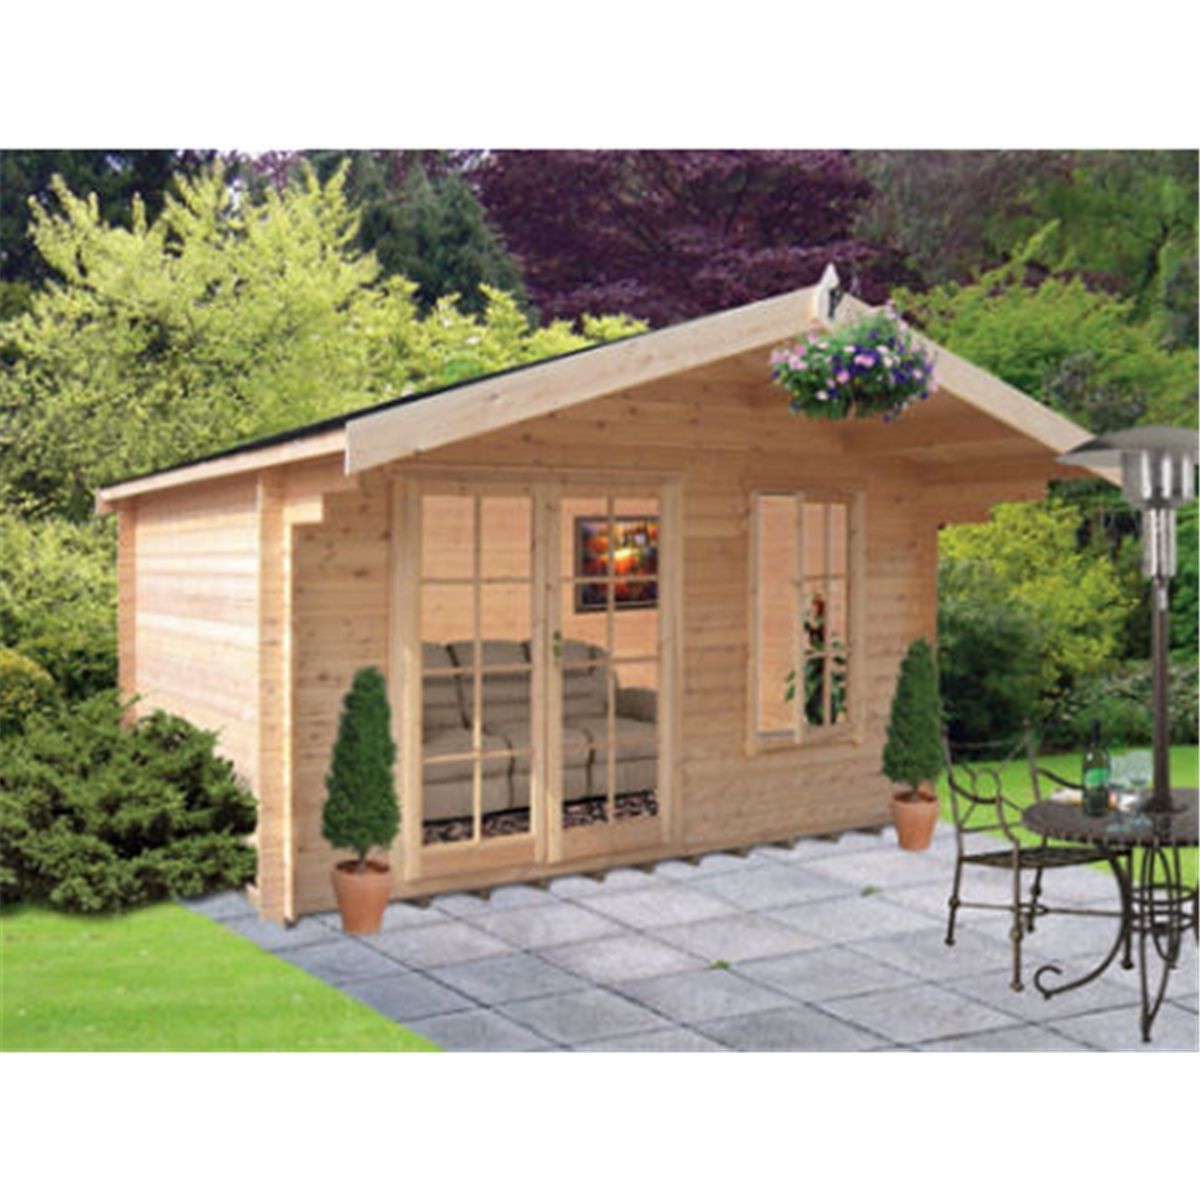 4 19m X 2 39m Log Cabin Fully Glazed Double Doors 4 19m X 2 39m 28mm Wall Thickness Shedsfirst In 2020 Double Doors Summer House Log Cabin